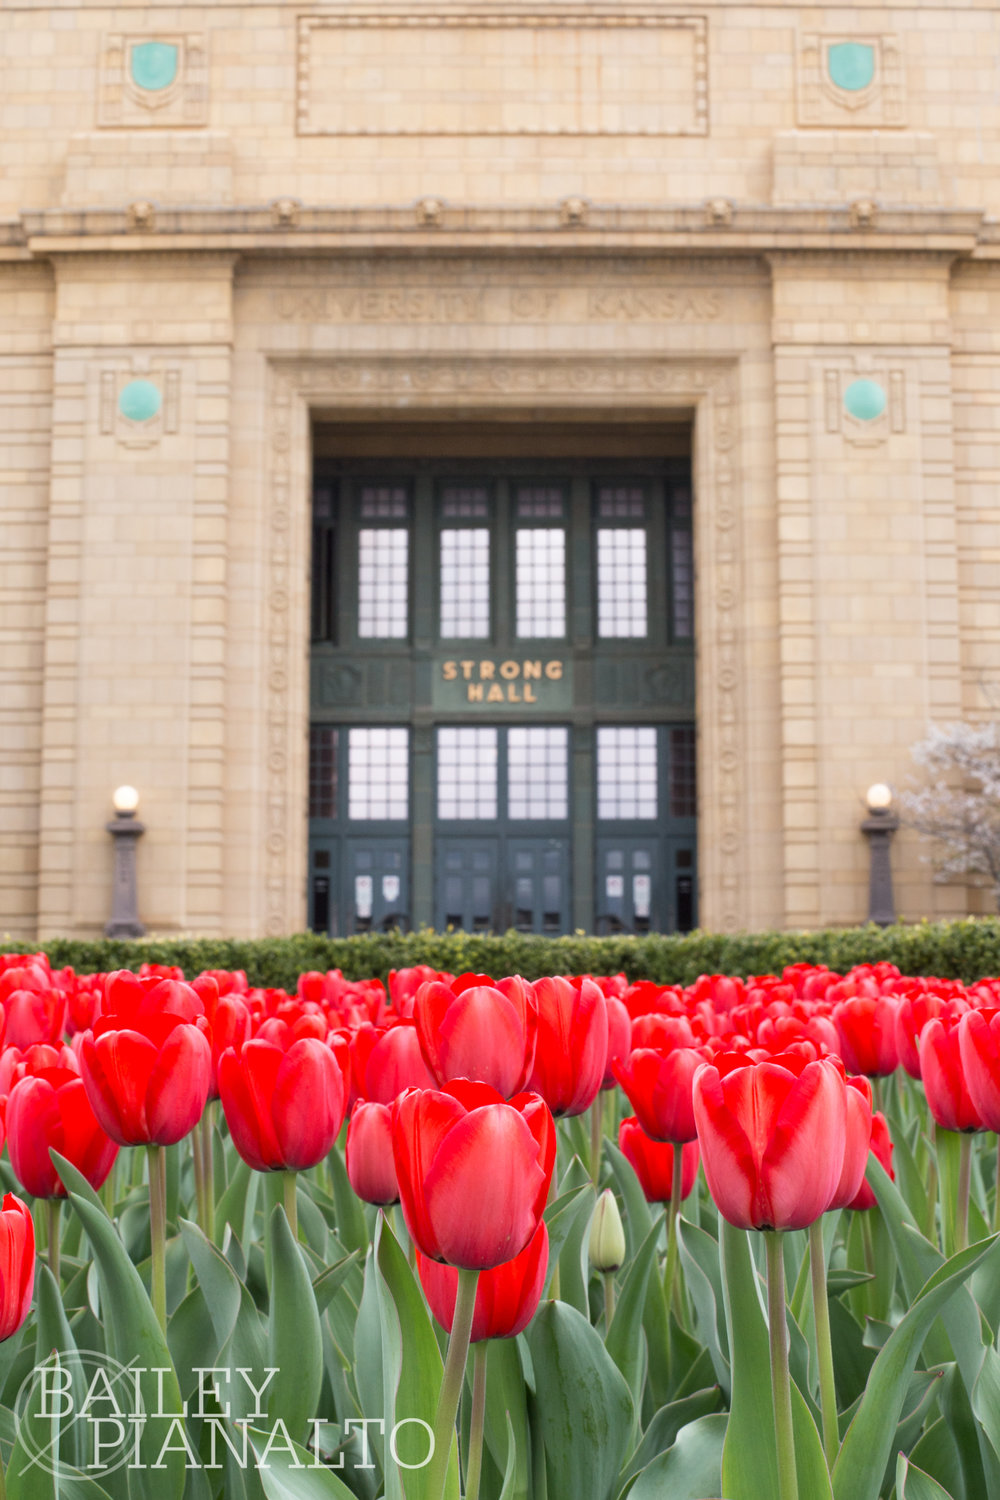 Tulips in full bloom outside Strong Hall on the KU campus.